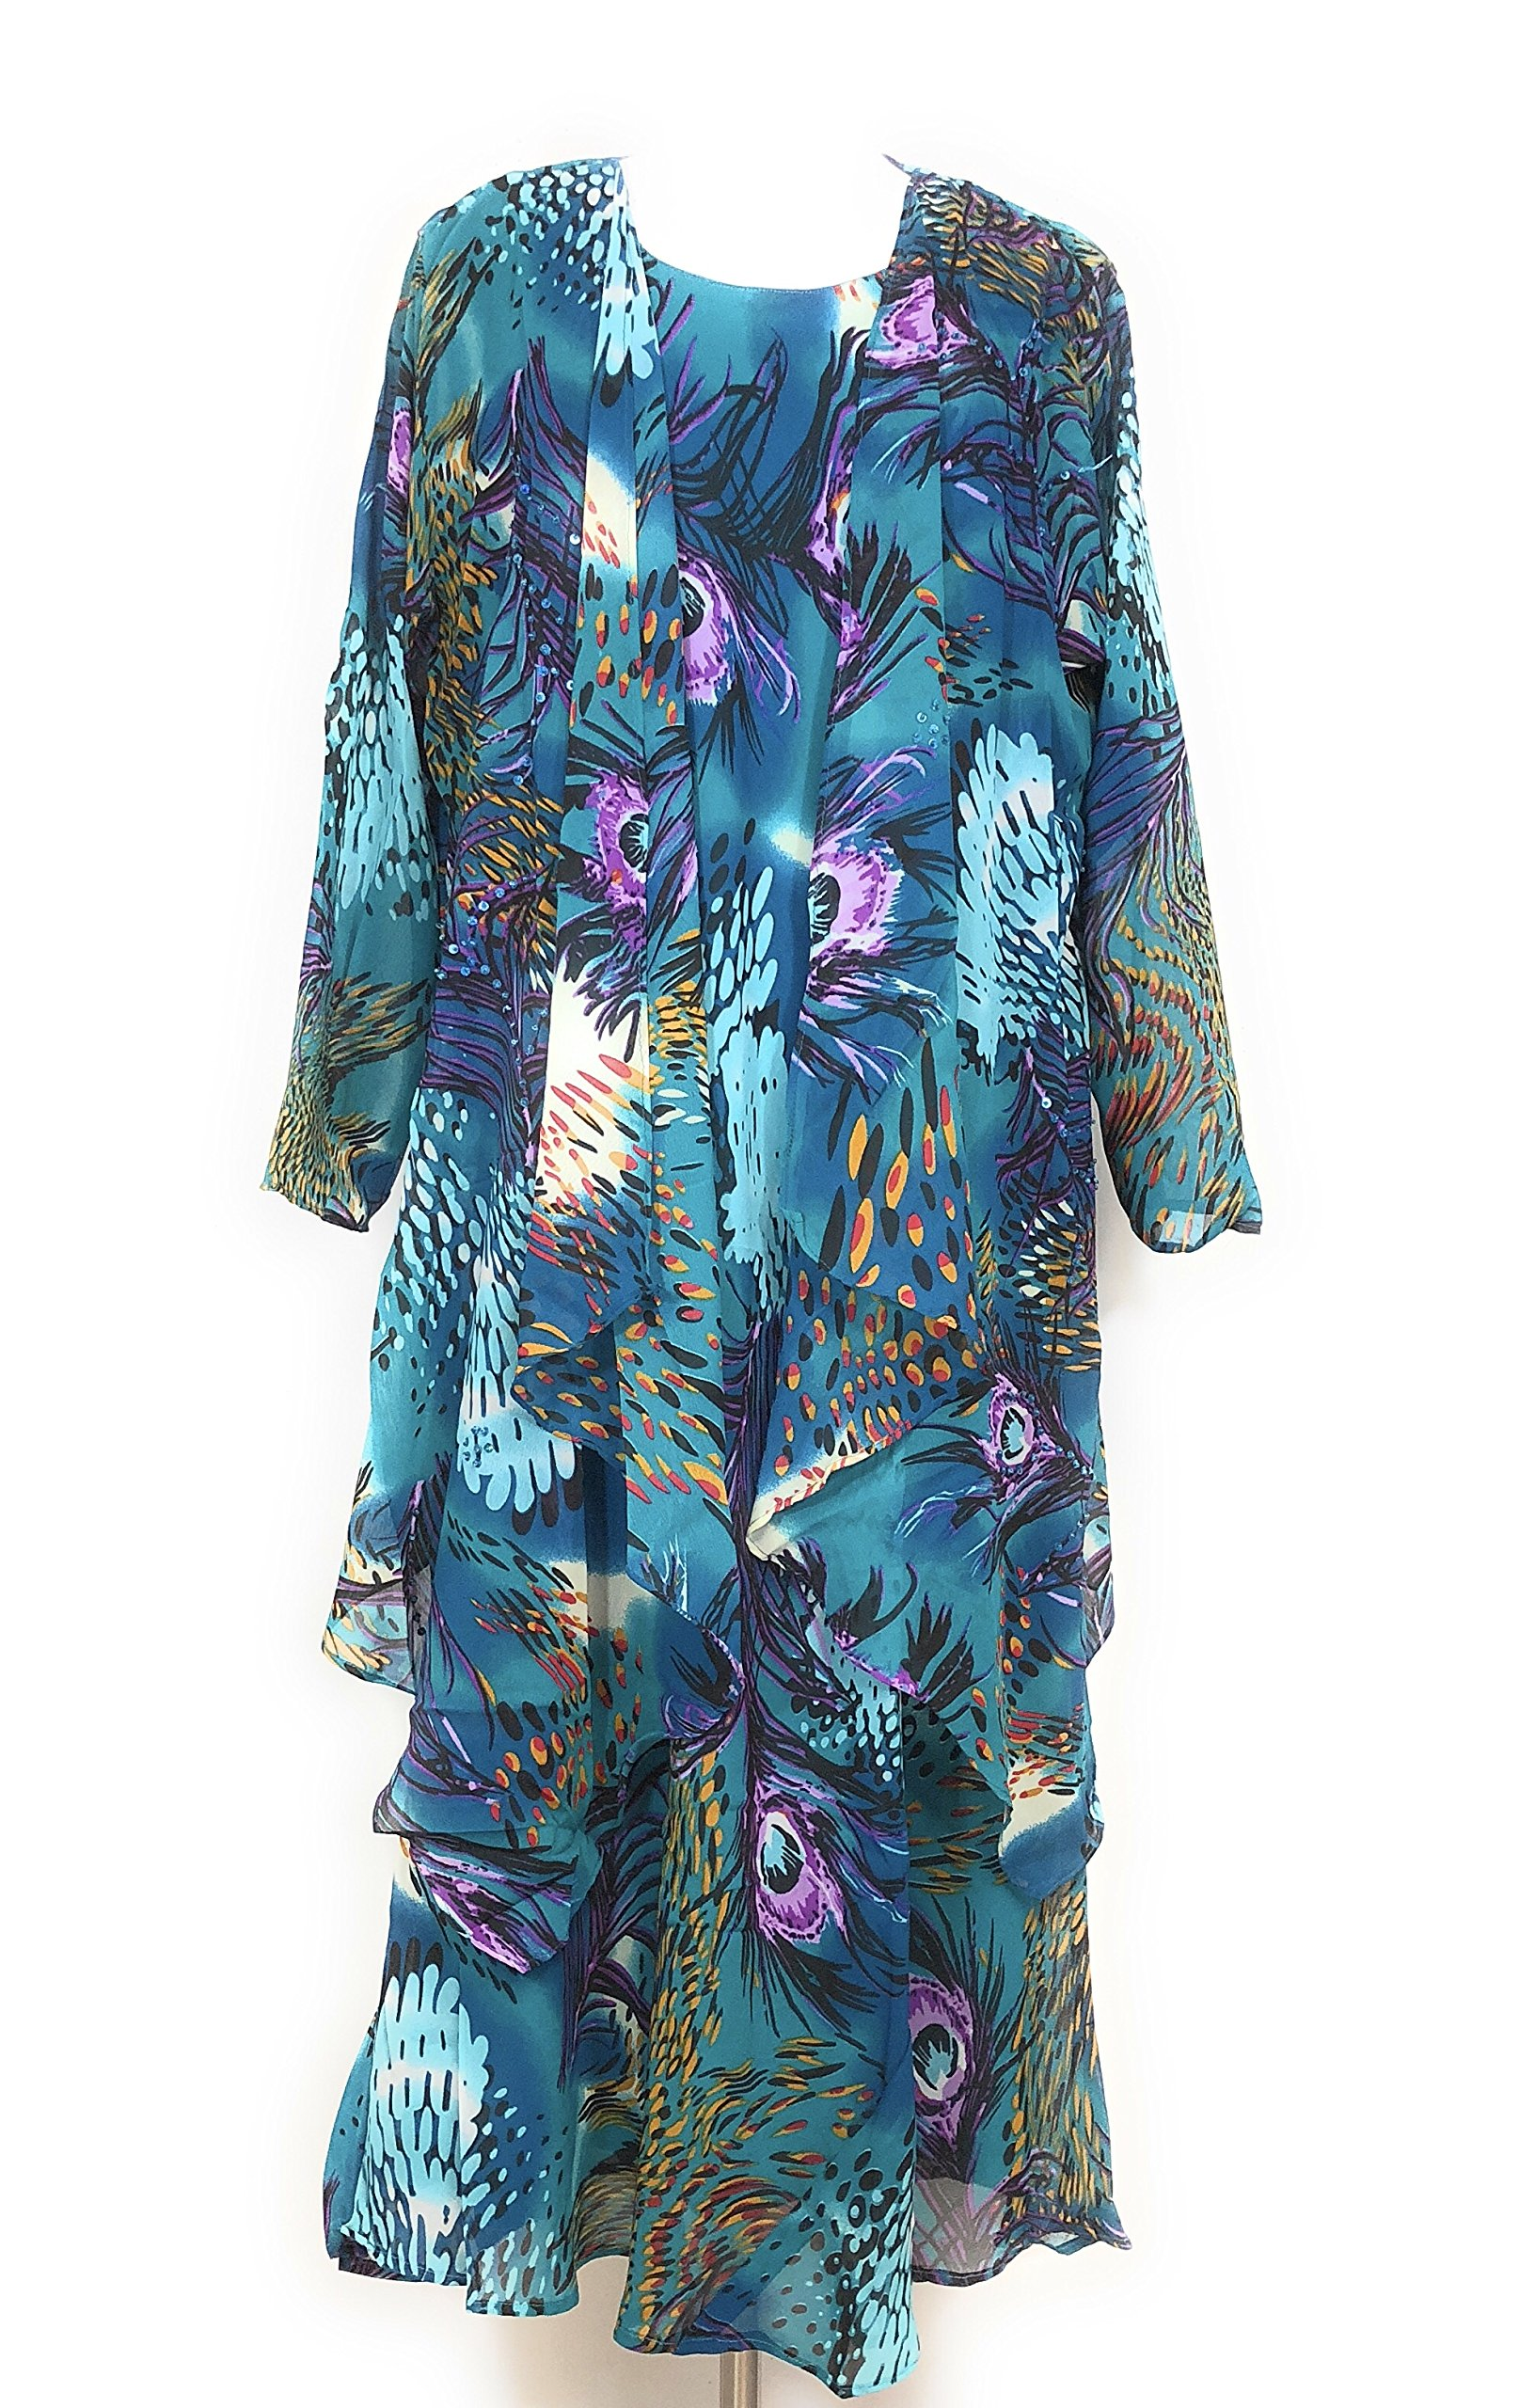 Jacket Dress - Women's Plus Size Set Embellished With Beads and Sequins (2X, Teal Blue)